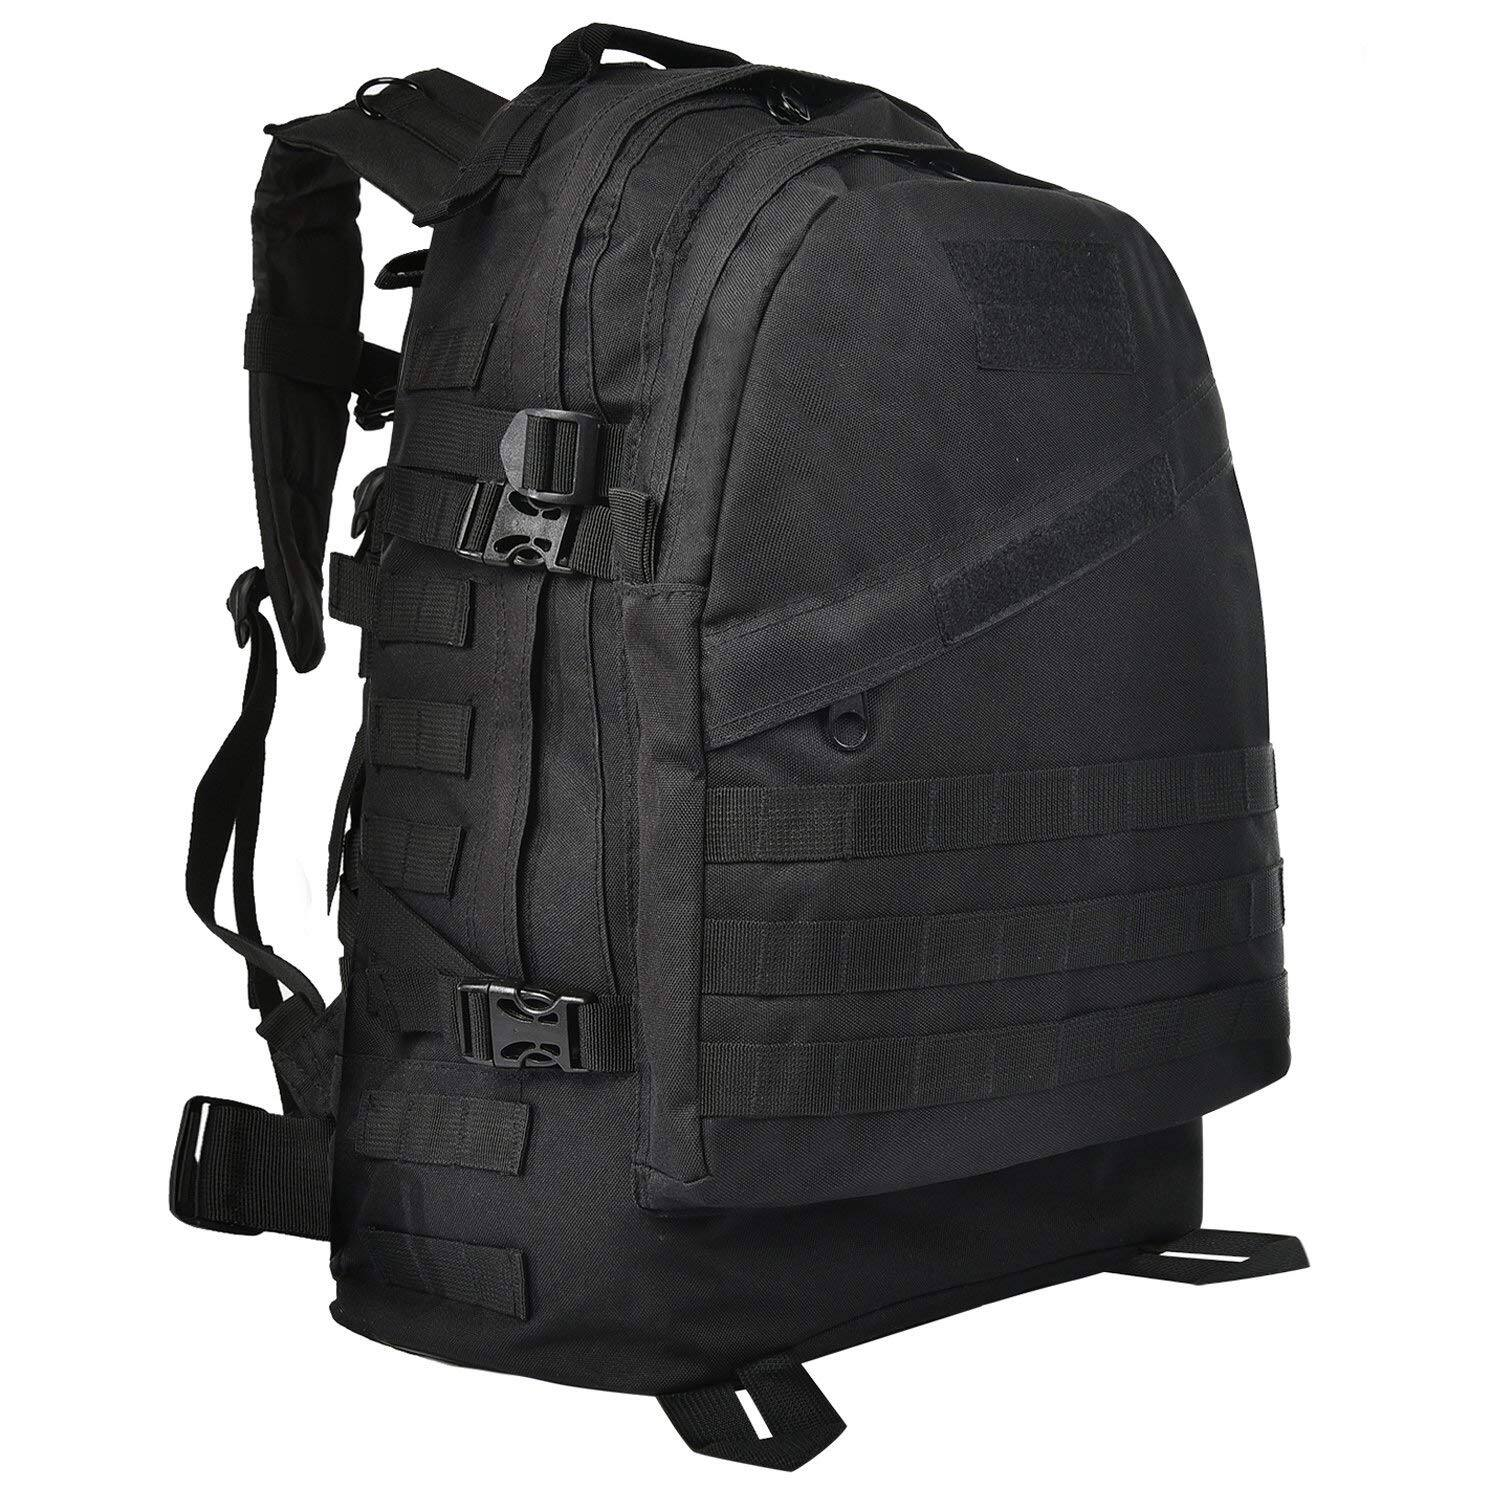 Water Resistant Backpack - Large 40L volume- Waterproof and Tactical for  outdoors -  9.99 FS b8726d64c6990